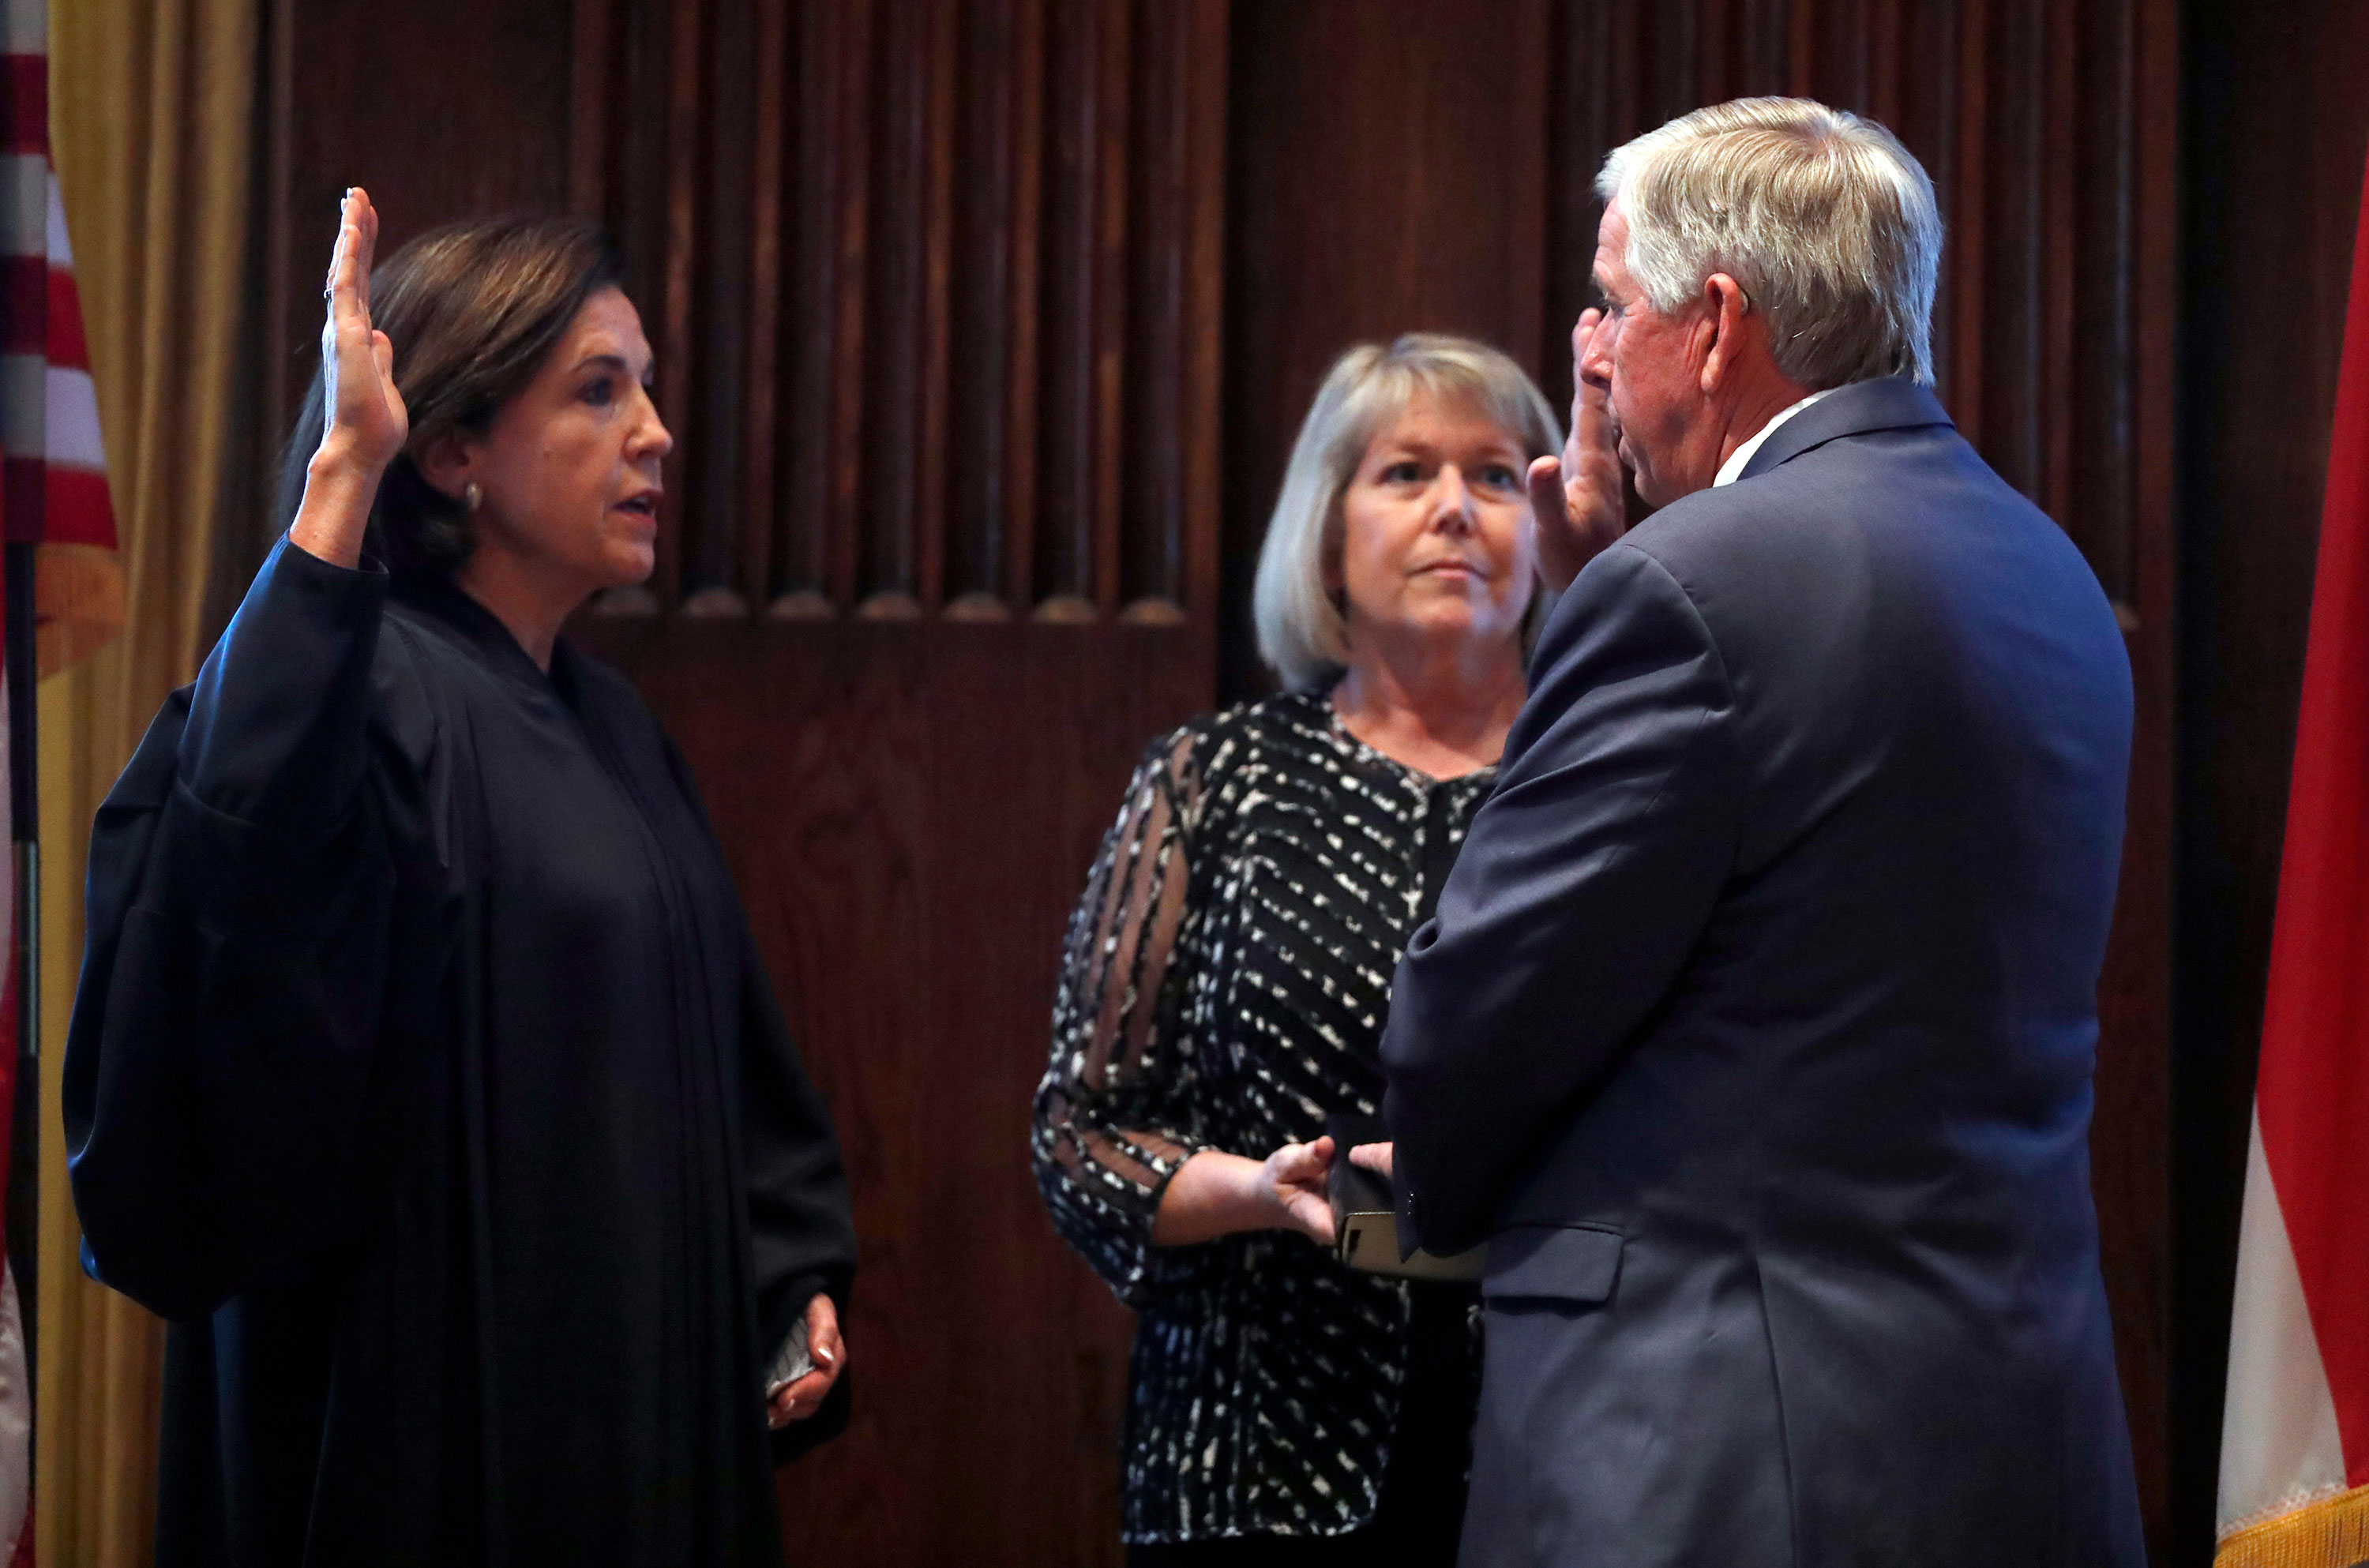 Teresa Parson watches as her husband Mike Parson is sworn in as the state's 57th governor by Judge Mary Rhodes Russellin June 2018.